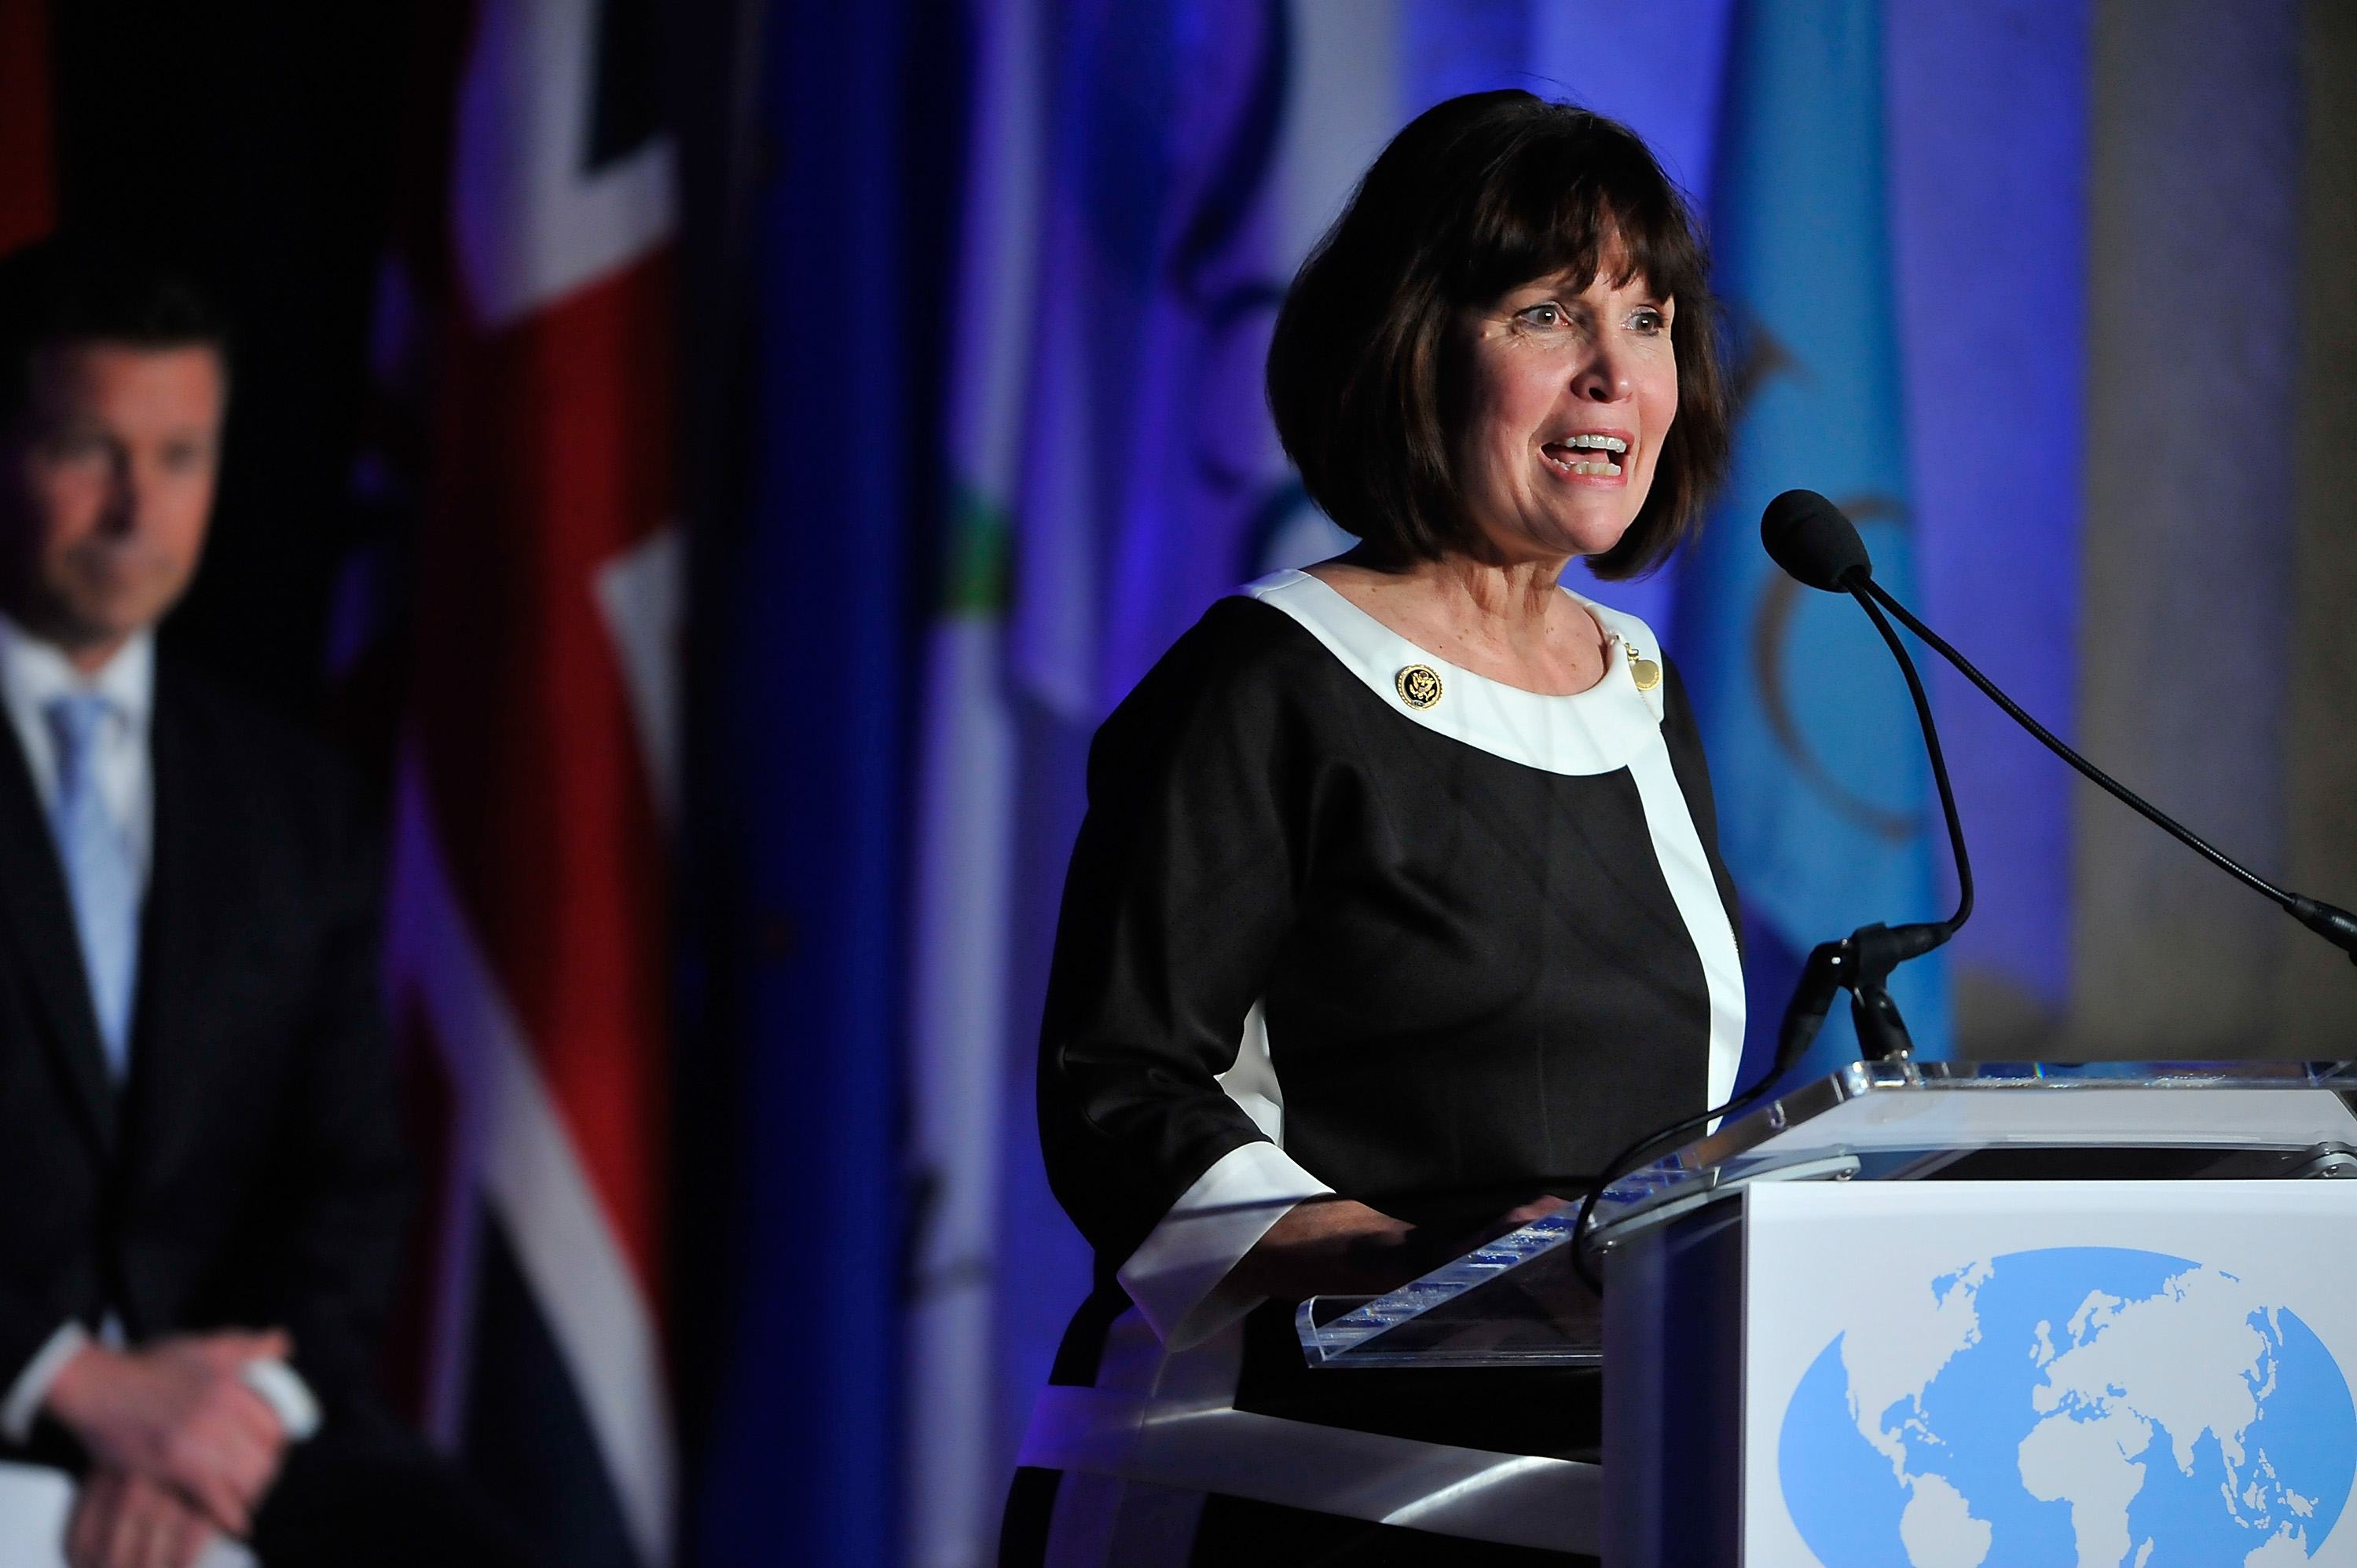 The Honorable Betty McCollum, International Conservation Caucus Foundation Co-Chair and member of the US House of Representatives, speaks at the International ICCF gala before presenting Prince Charles, Prince of Wales, with the Teddy Roosevelt Award for Exceptional Leadership in Conservation on March 19, 2015 in Washington, DC. (Photo by Larry French/Getty Images)